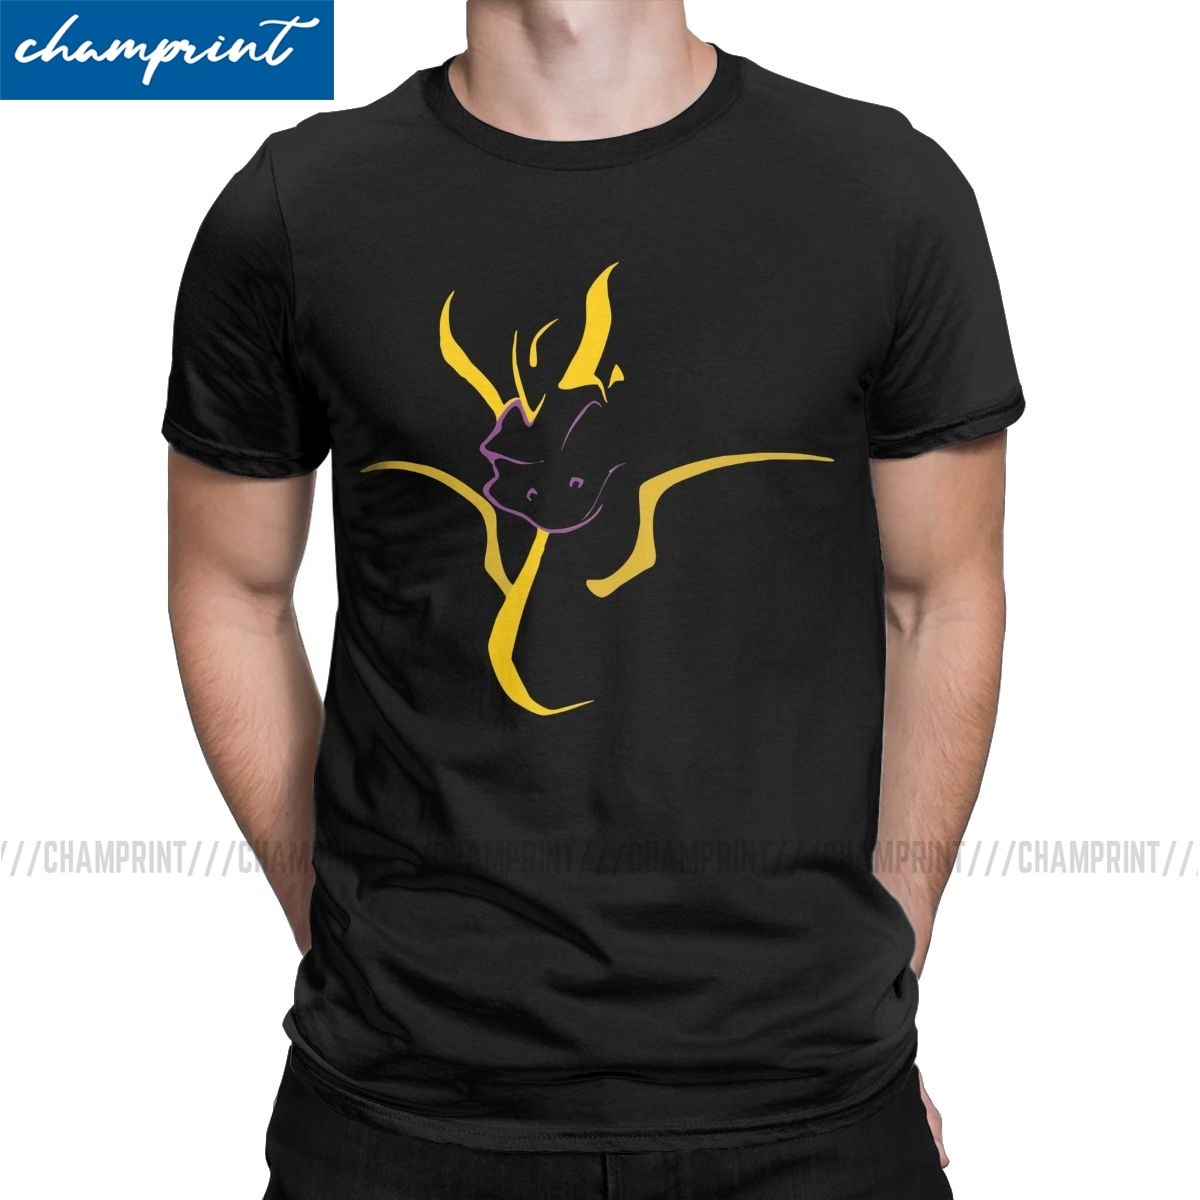 Year Of The Dragon T-Shirts Men Spyro the Dragon Purple Dragon Game Fashion Tee Shirt Round Collar T Shirts Original Clothing image